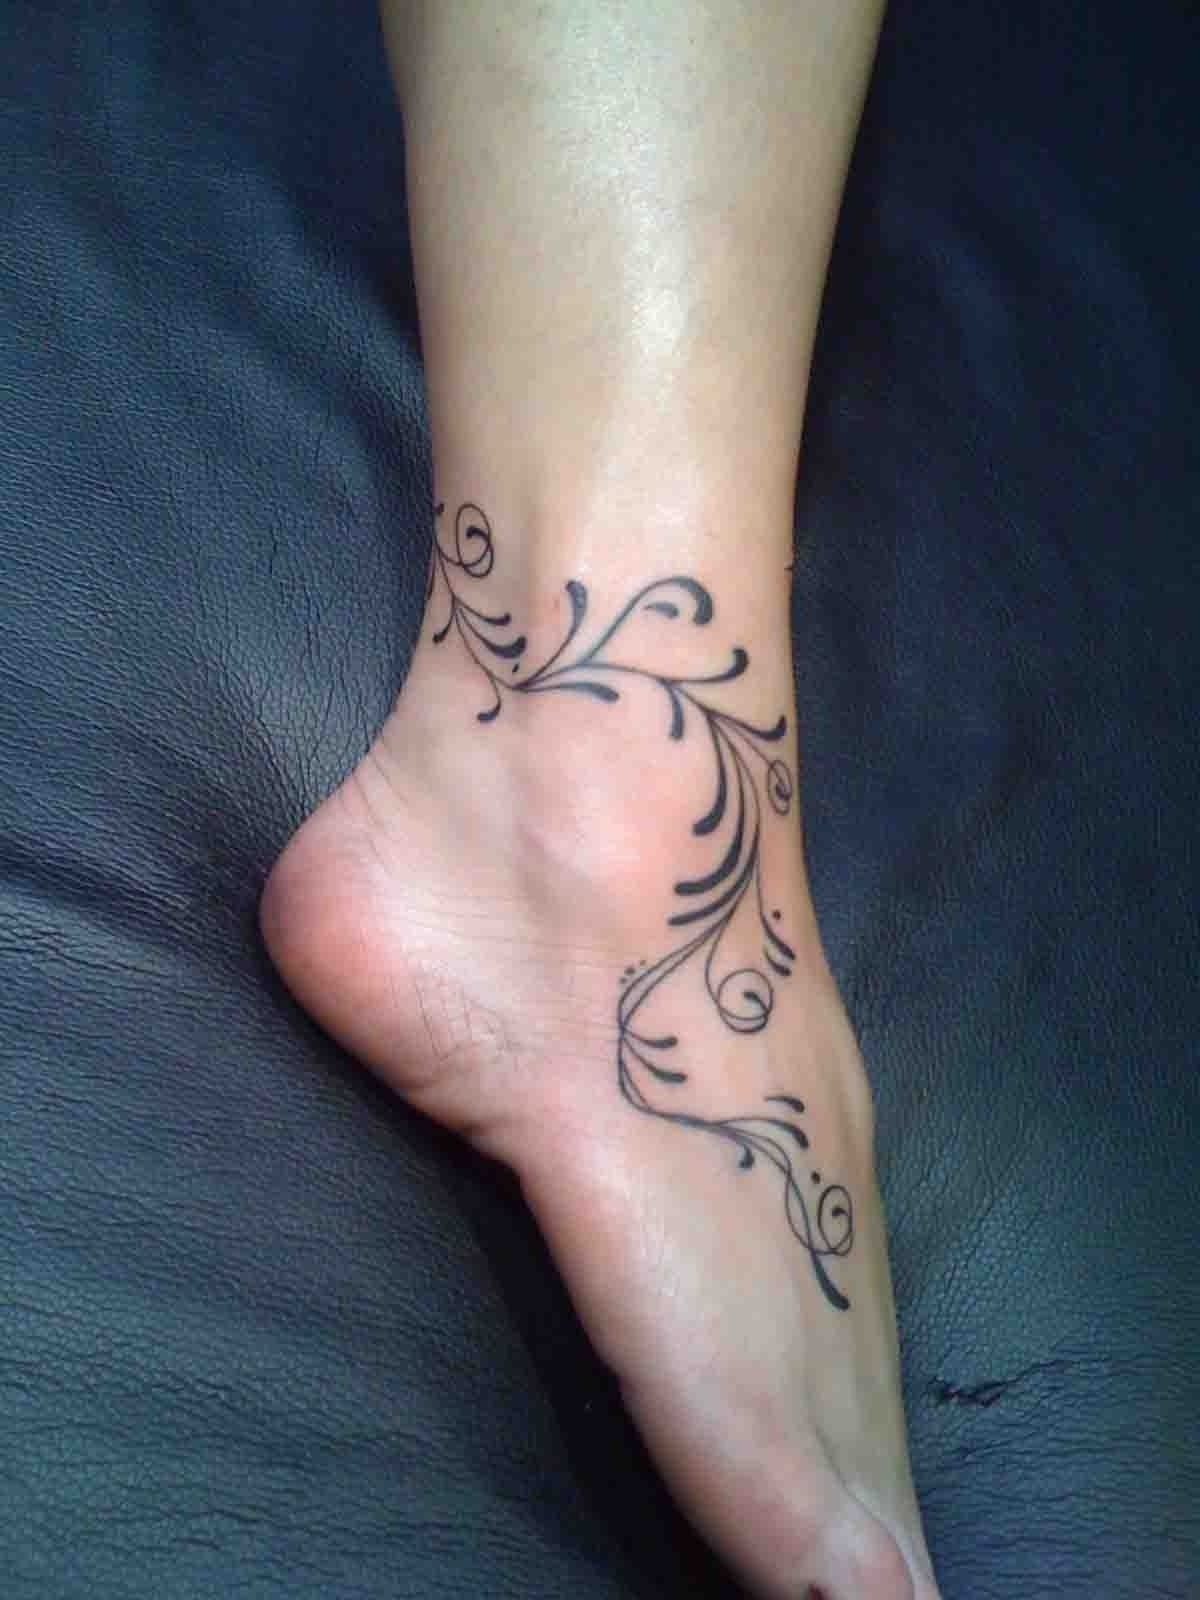 10 Attractive Tattoo Ideas For Womens Feet foot tattoo designs for women crazy tattoo designs foot tattoos 1